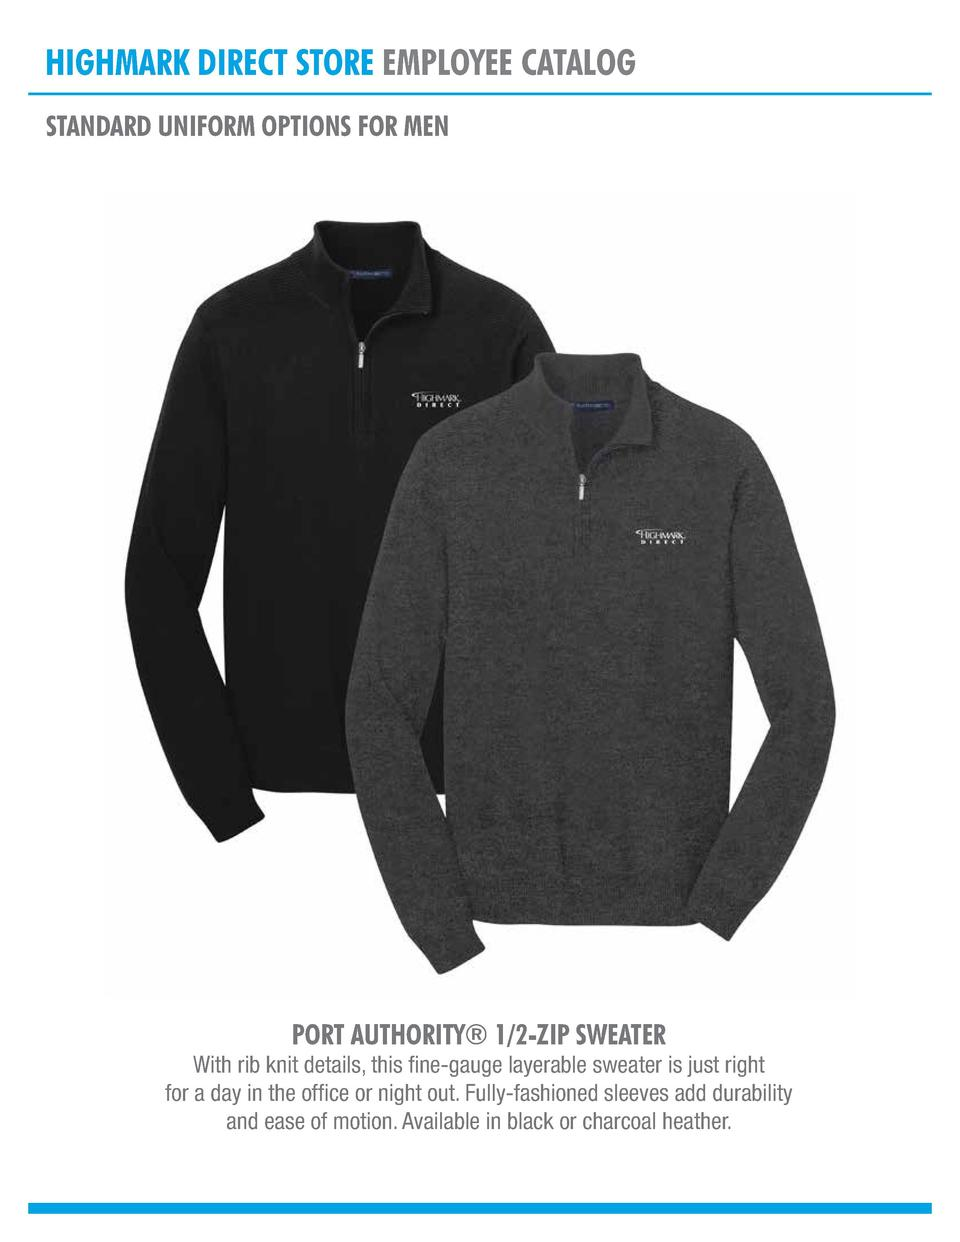 HIGHMARK DIRECT STORE EMPLOYEE CATALOG STANDARD UNIFORM OPTIONS FOR MEN  PORT AUTHORITY   1 2-ZIP SWEATER  With rib knit d...